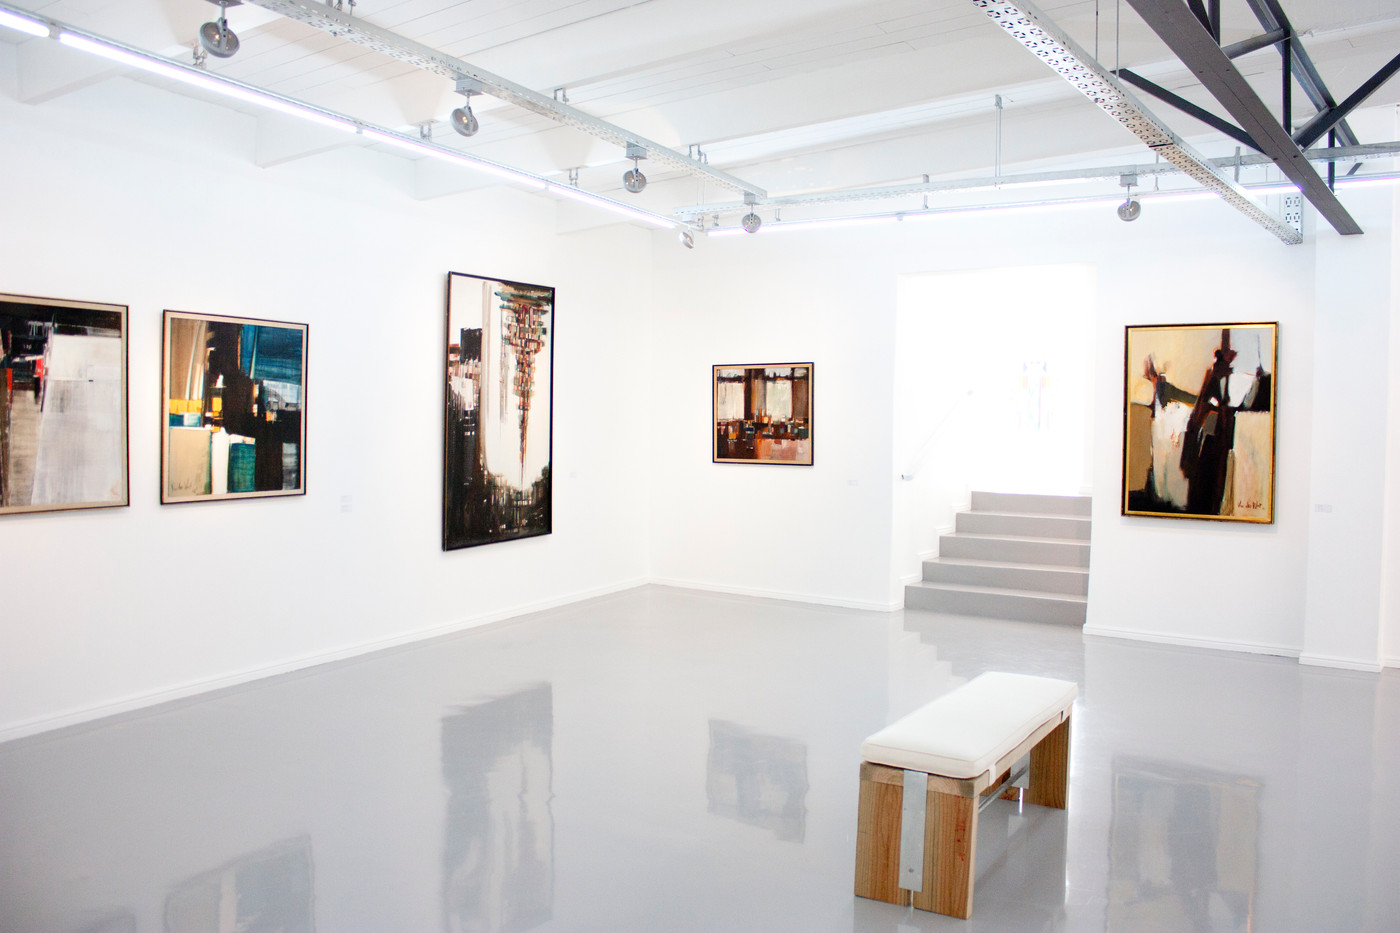 Hannatjie van der Wat | In Retro: Seventy-Year Career Survey (1943 – 2013) | 2013 | Installation View